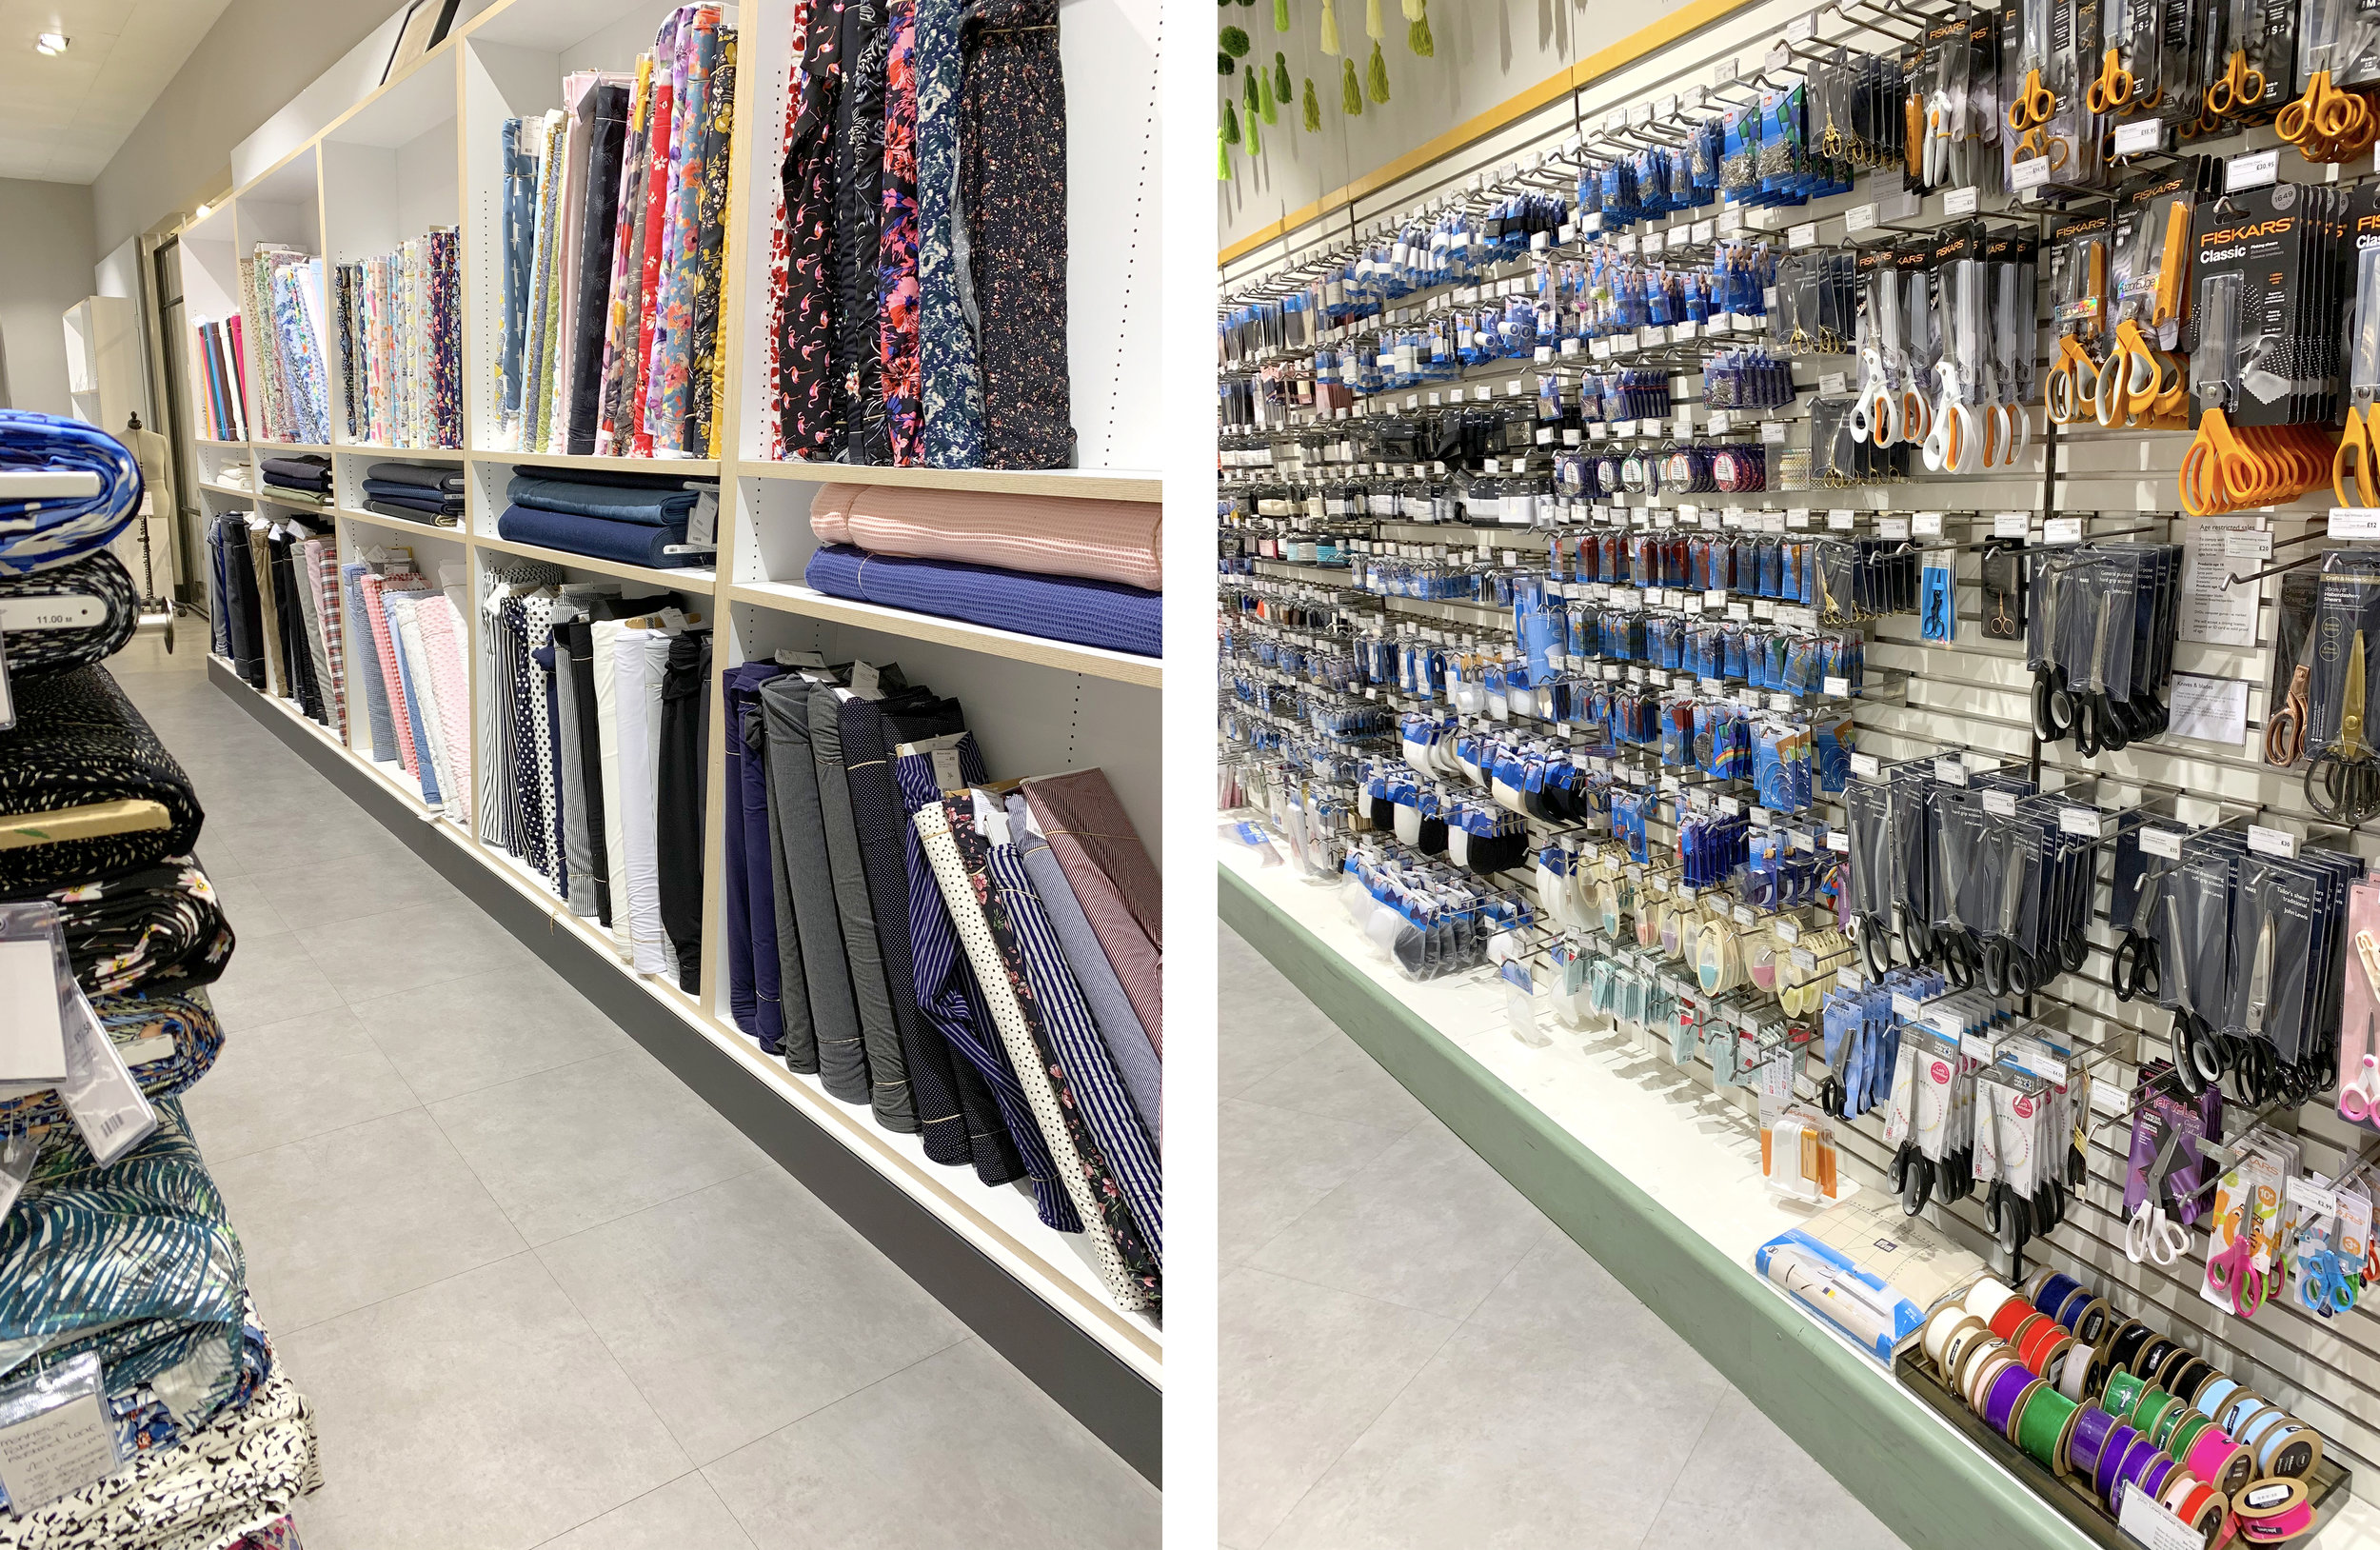 The fabric selection is small, but the assortment of notions, tools, and bits & bobs is comprehensive.